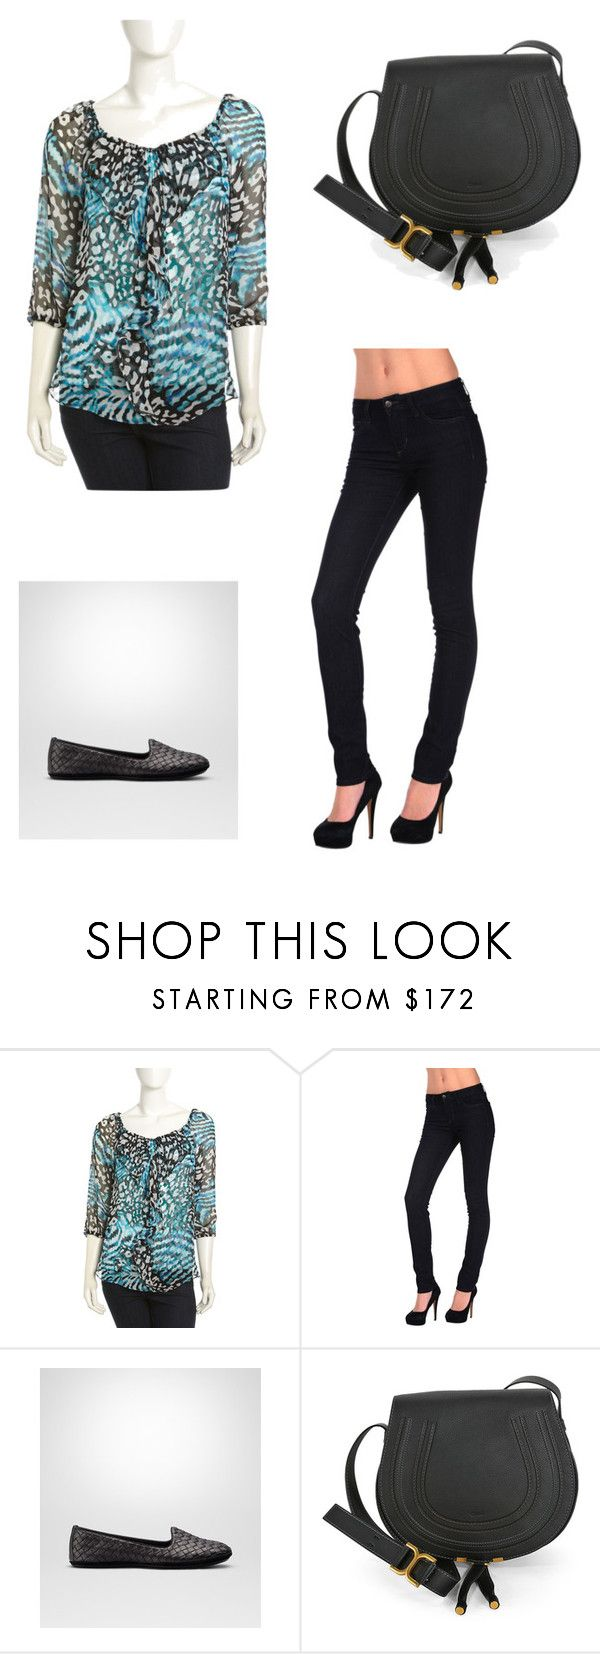 """""""Possible outfit"""" by shylyassertive ❤ liked on Polyvore featuring Alberto Makali, Joe's Jeans, Bottega Veneta and Chloé"""